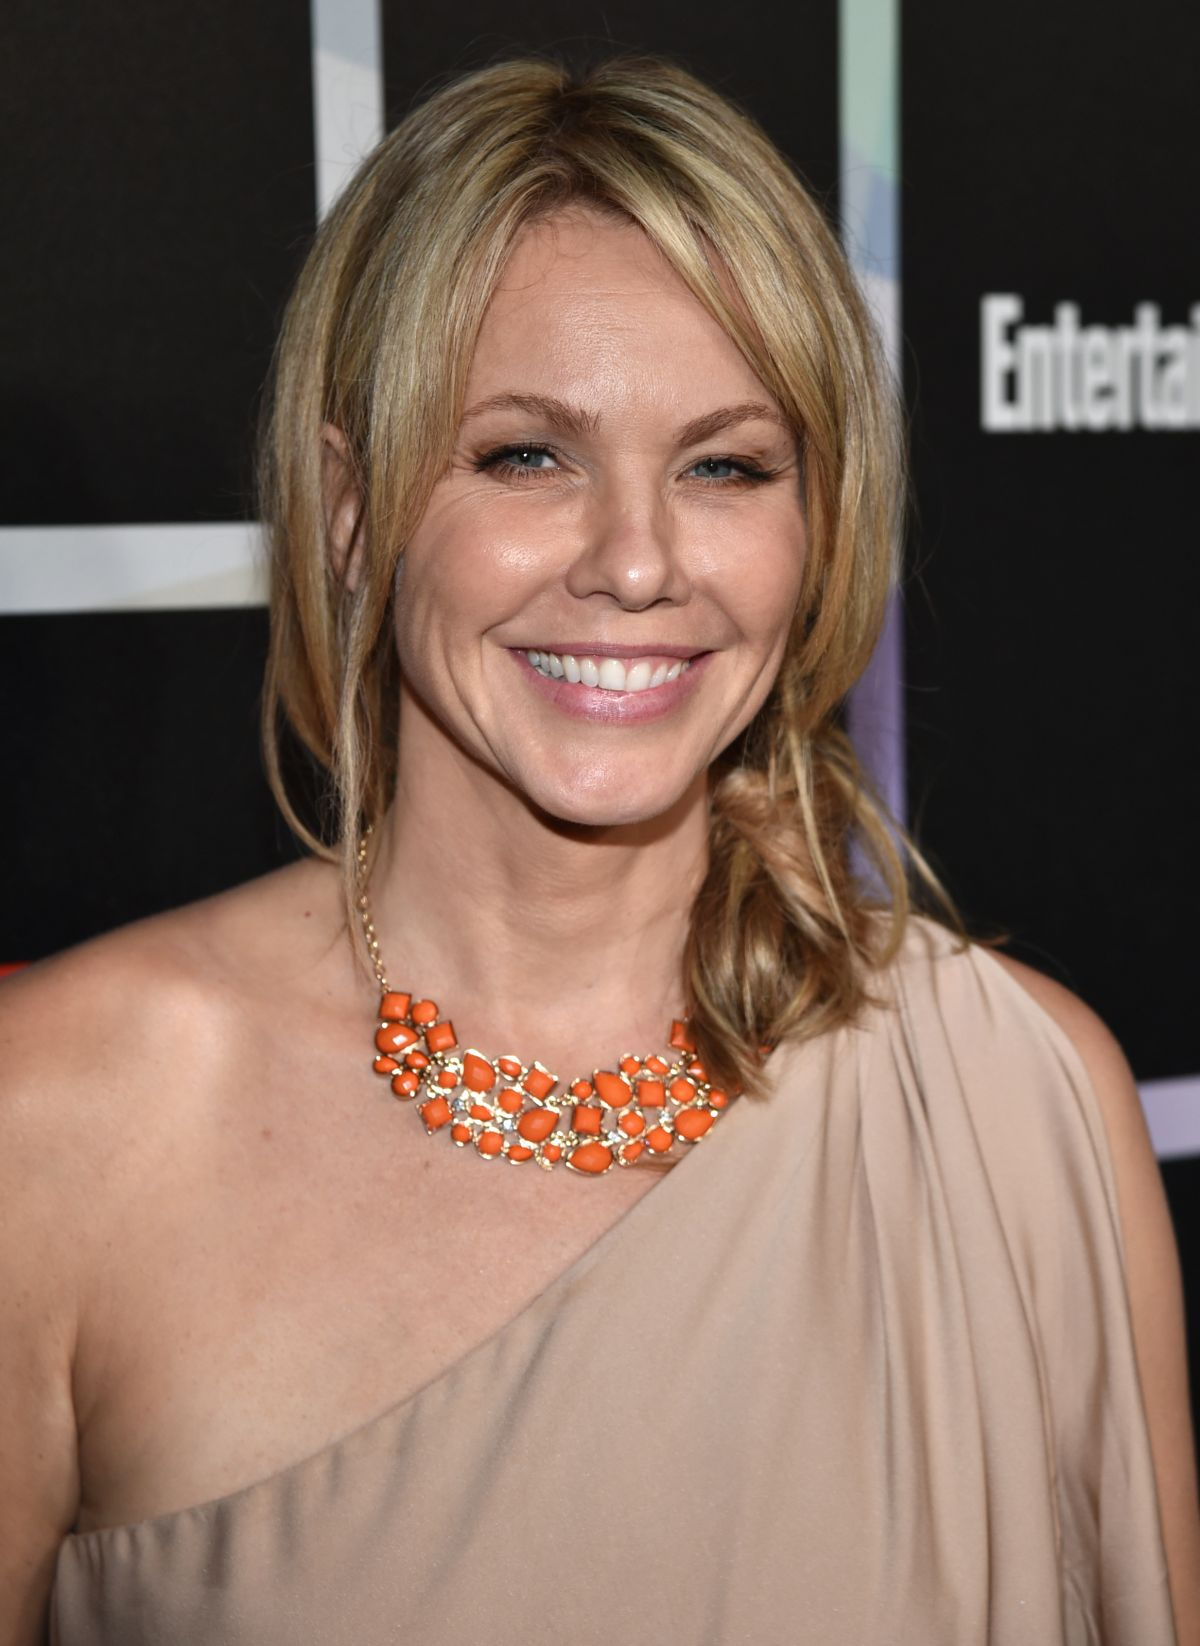 ANDREA ROTH at Entertainment Weekly's Comic-con Celebration